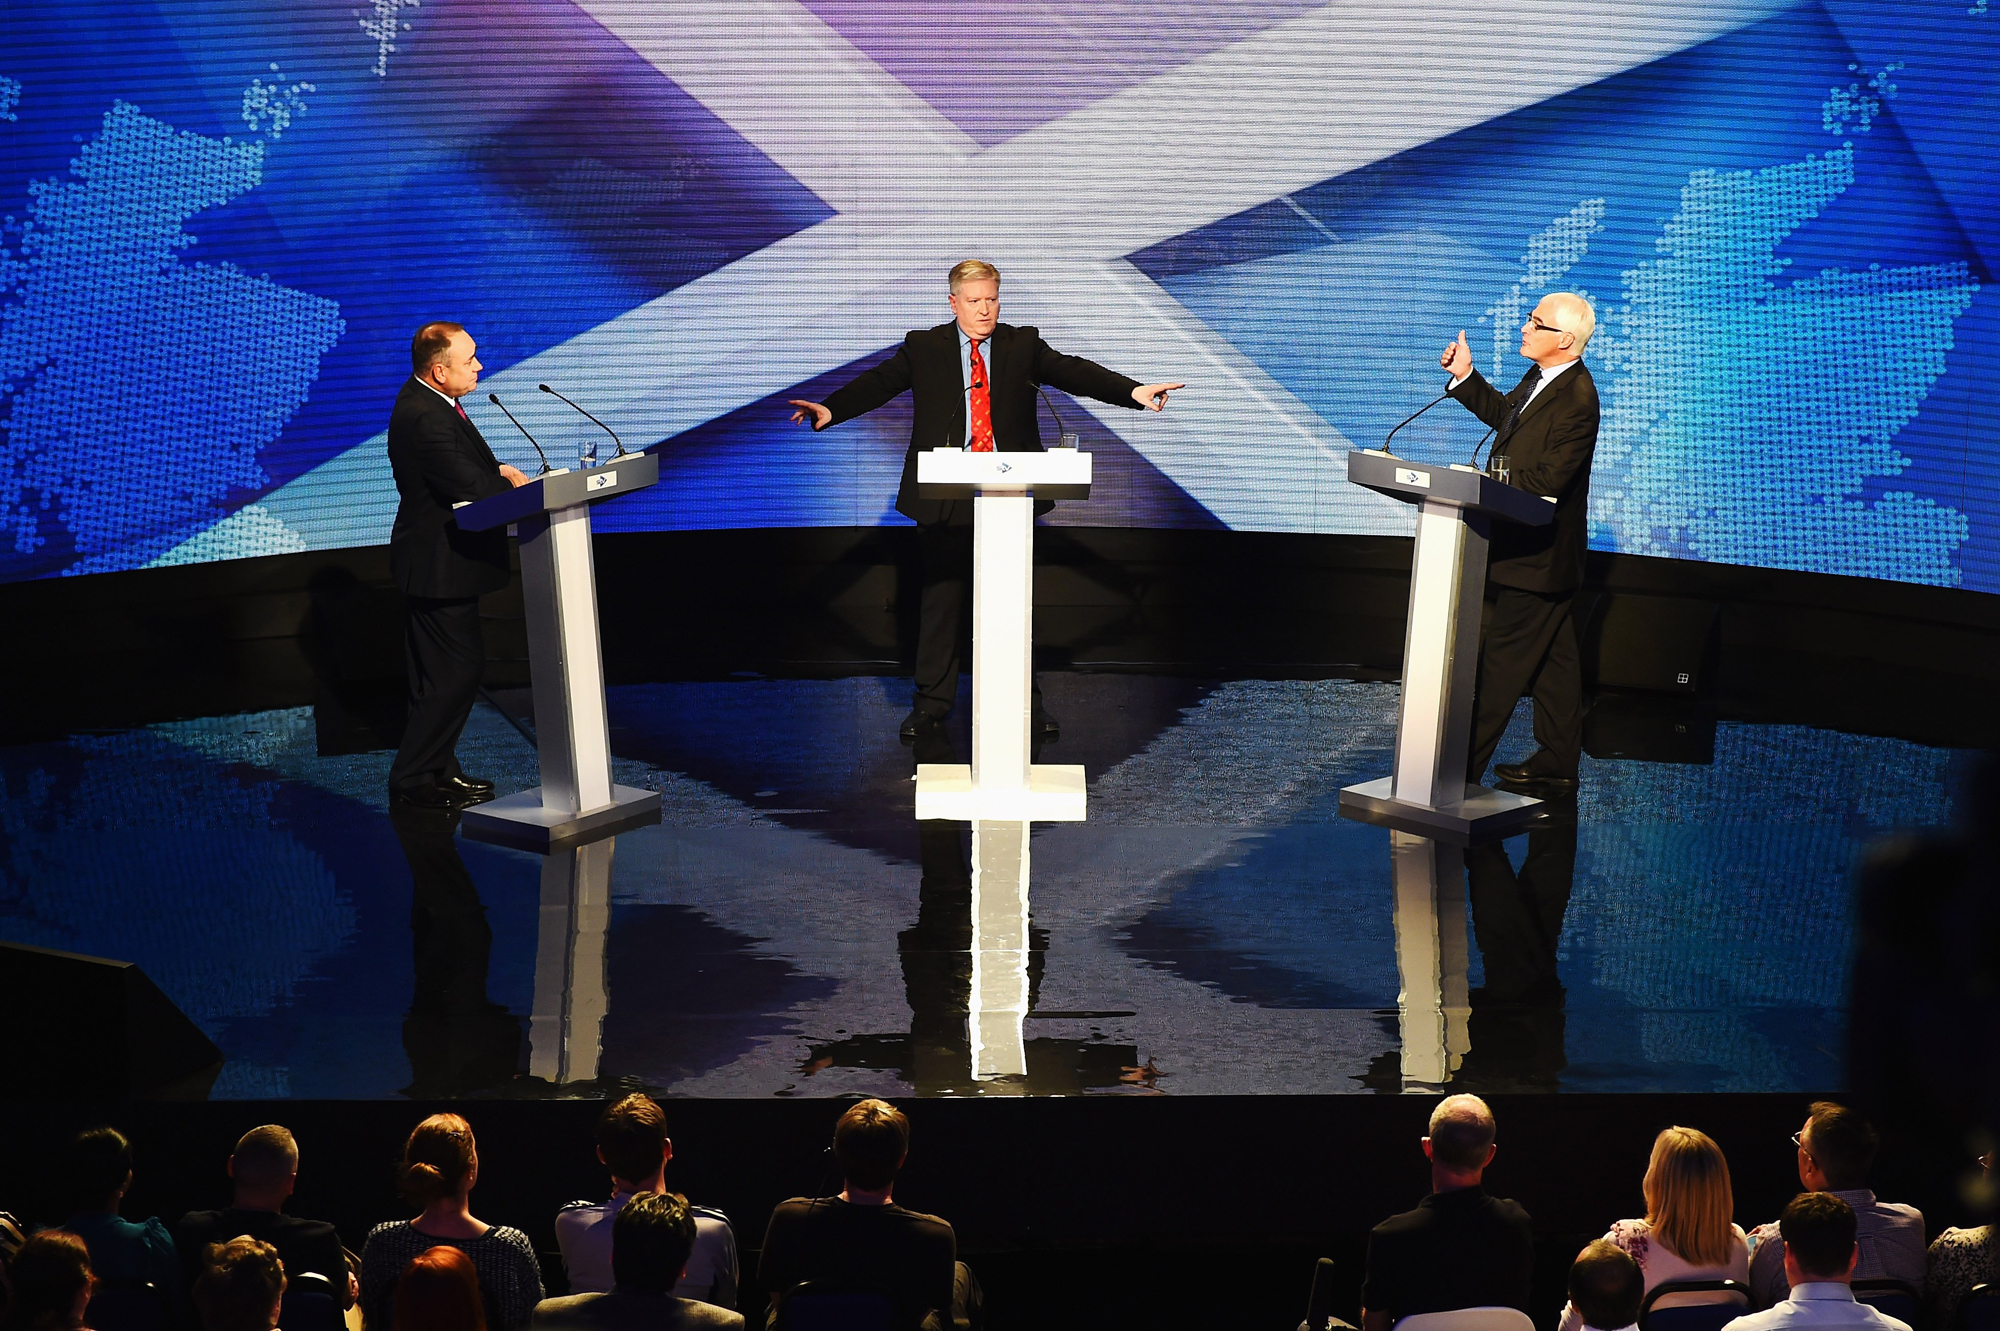 Alex Salmond, First Minister of Scotland and Alistair Darling, chairman of Better Together take part in a live television debate hosted by Bernard Ponsonby at the Royal Conservatoire of Scotland on August 5, 2014 in Glasgow, Scotland.